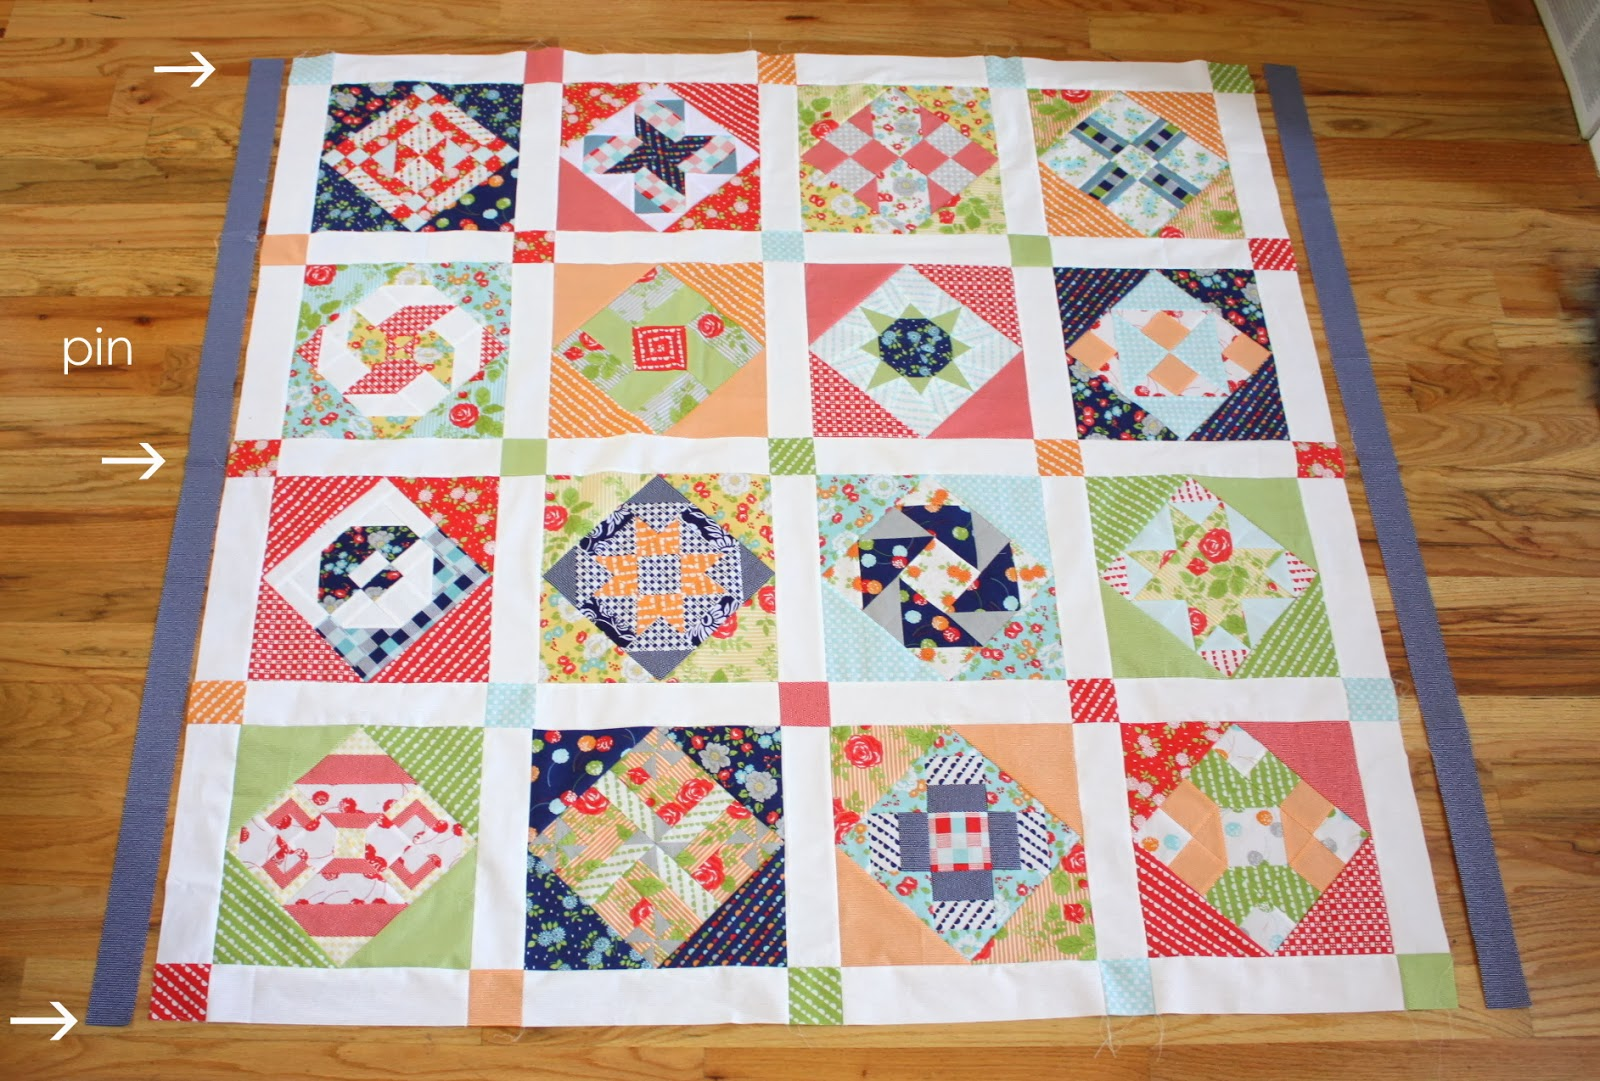 Virtual Quilting Bee - Sashing and Borders - Diary of a Quilter ... : border quilt - Adamdwight.com